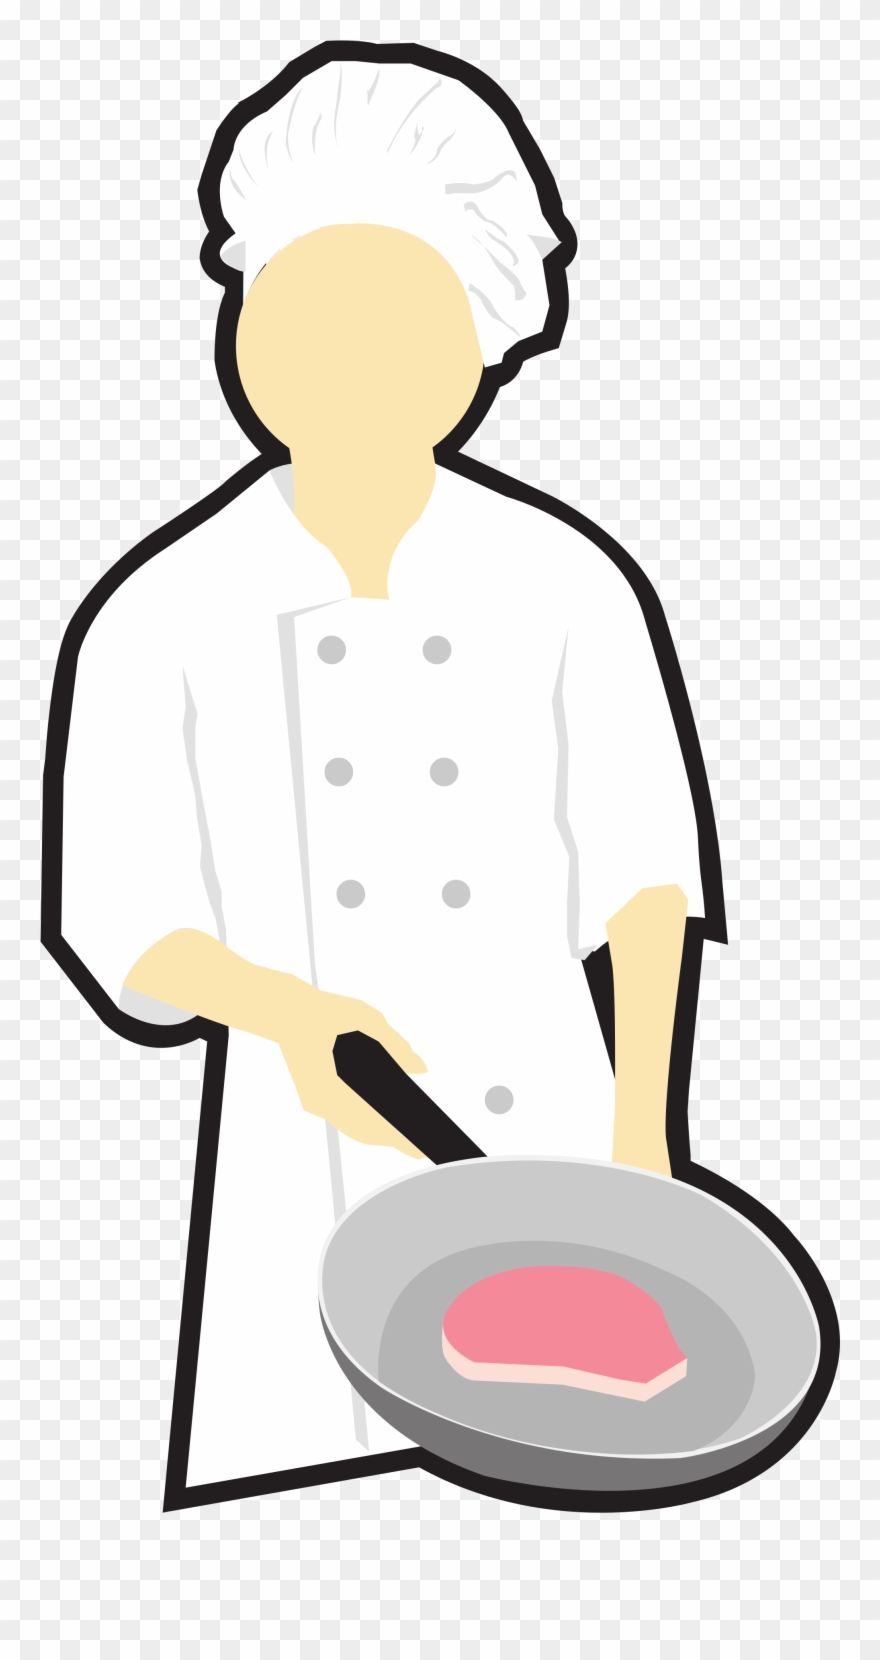 medium resolution of file chef cooking clip art svg wikimedia main cook chef clipart png download